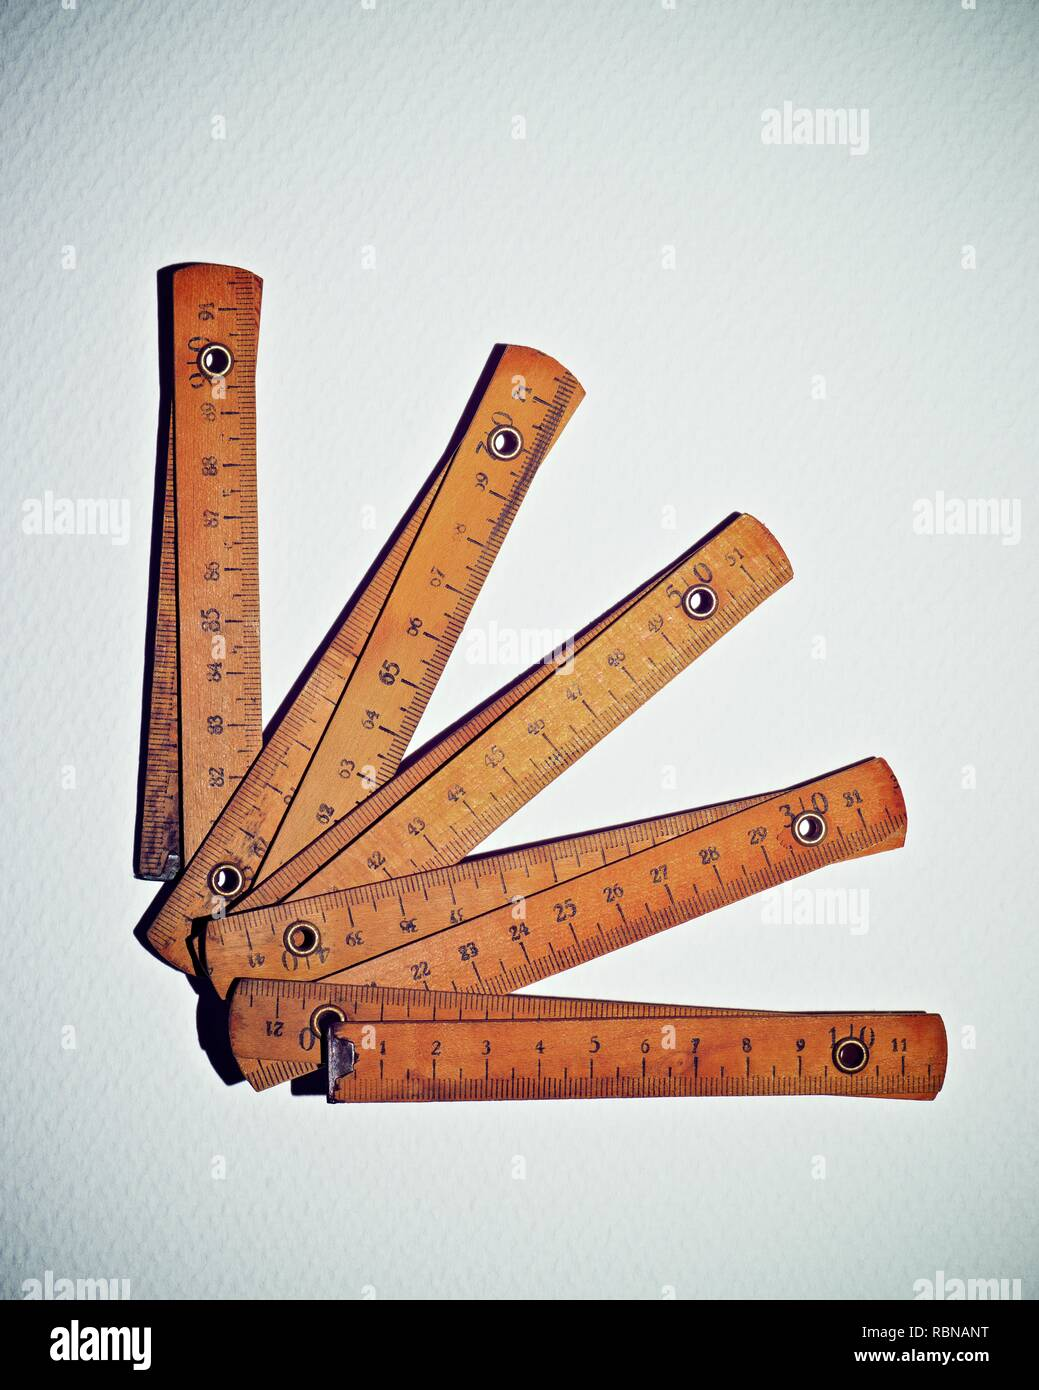 Carpenter meter on a white paper. - Stock Image